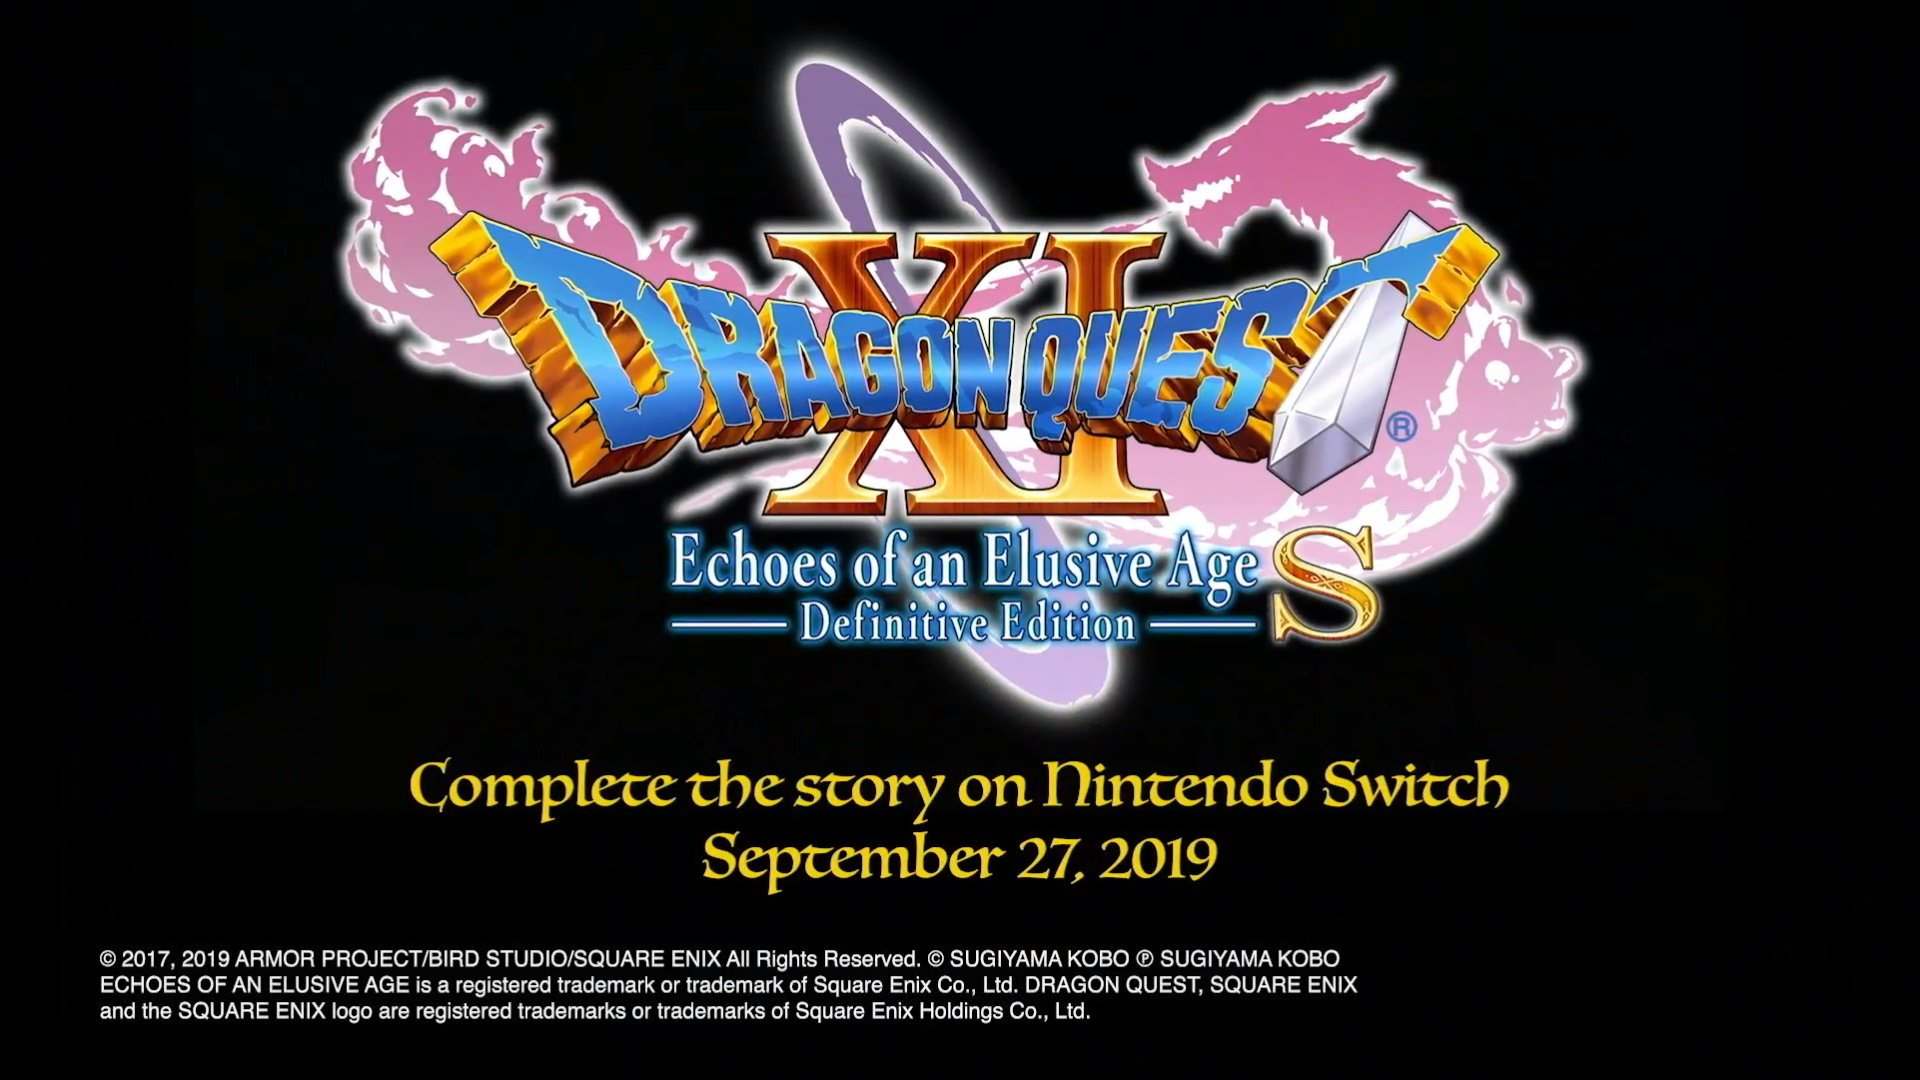 E3 Announcement: Dragon Quest XI S: Echoes of an Elusive Age Definitive Edition releases on September 27, 2019